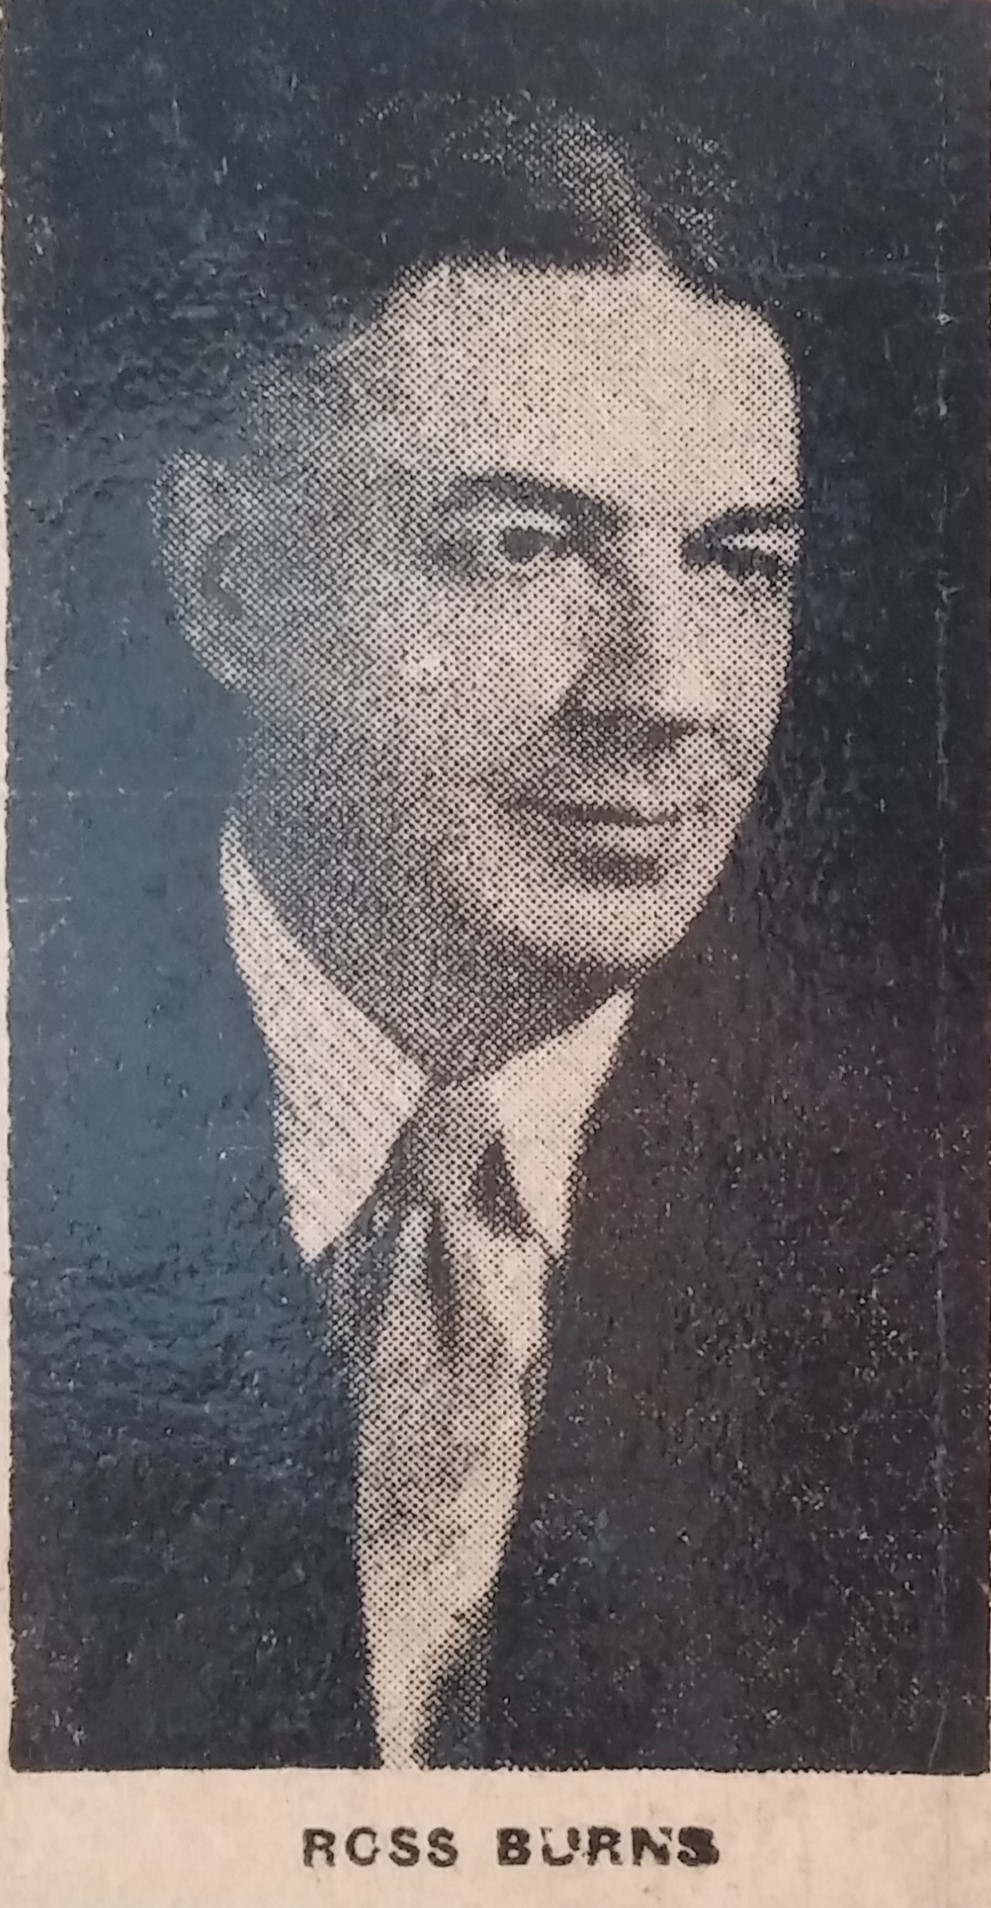 Ross Burns - 1940